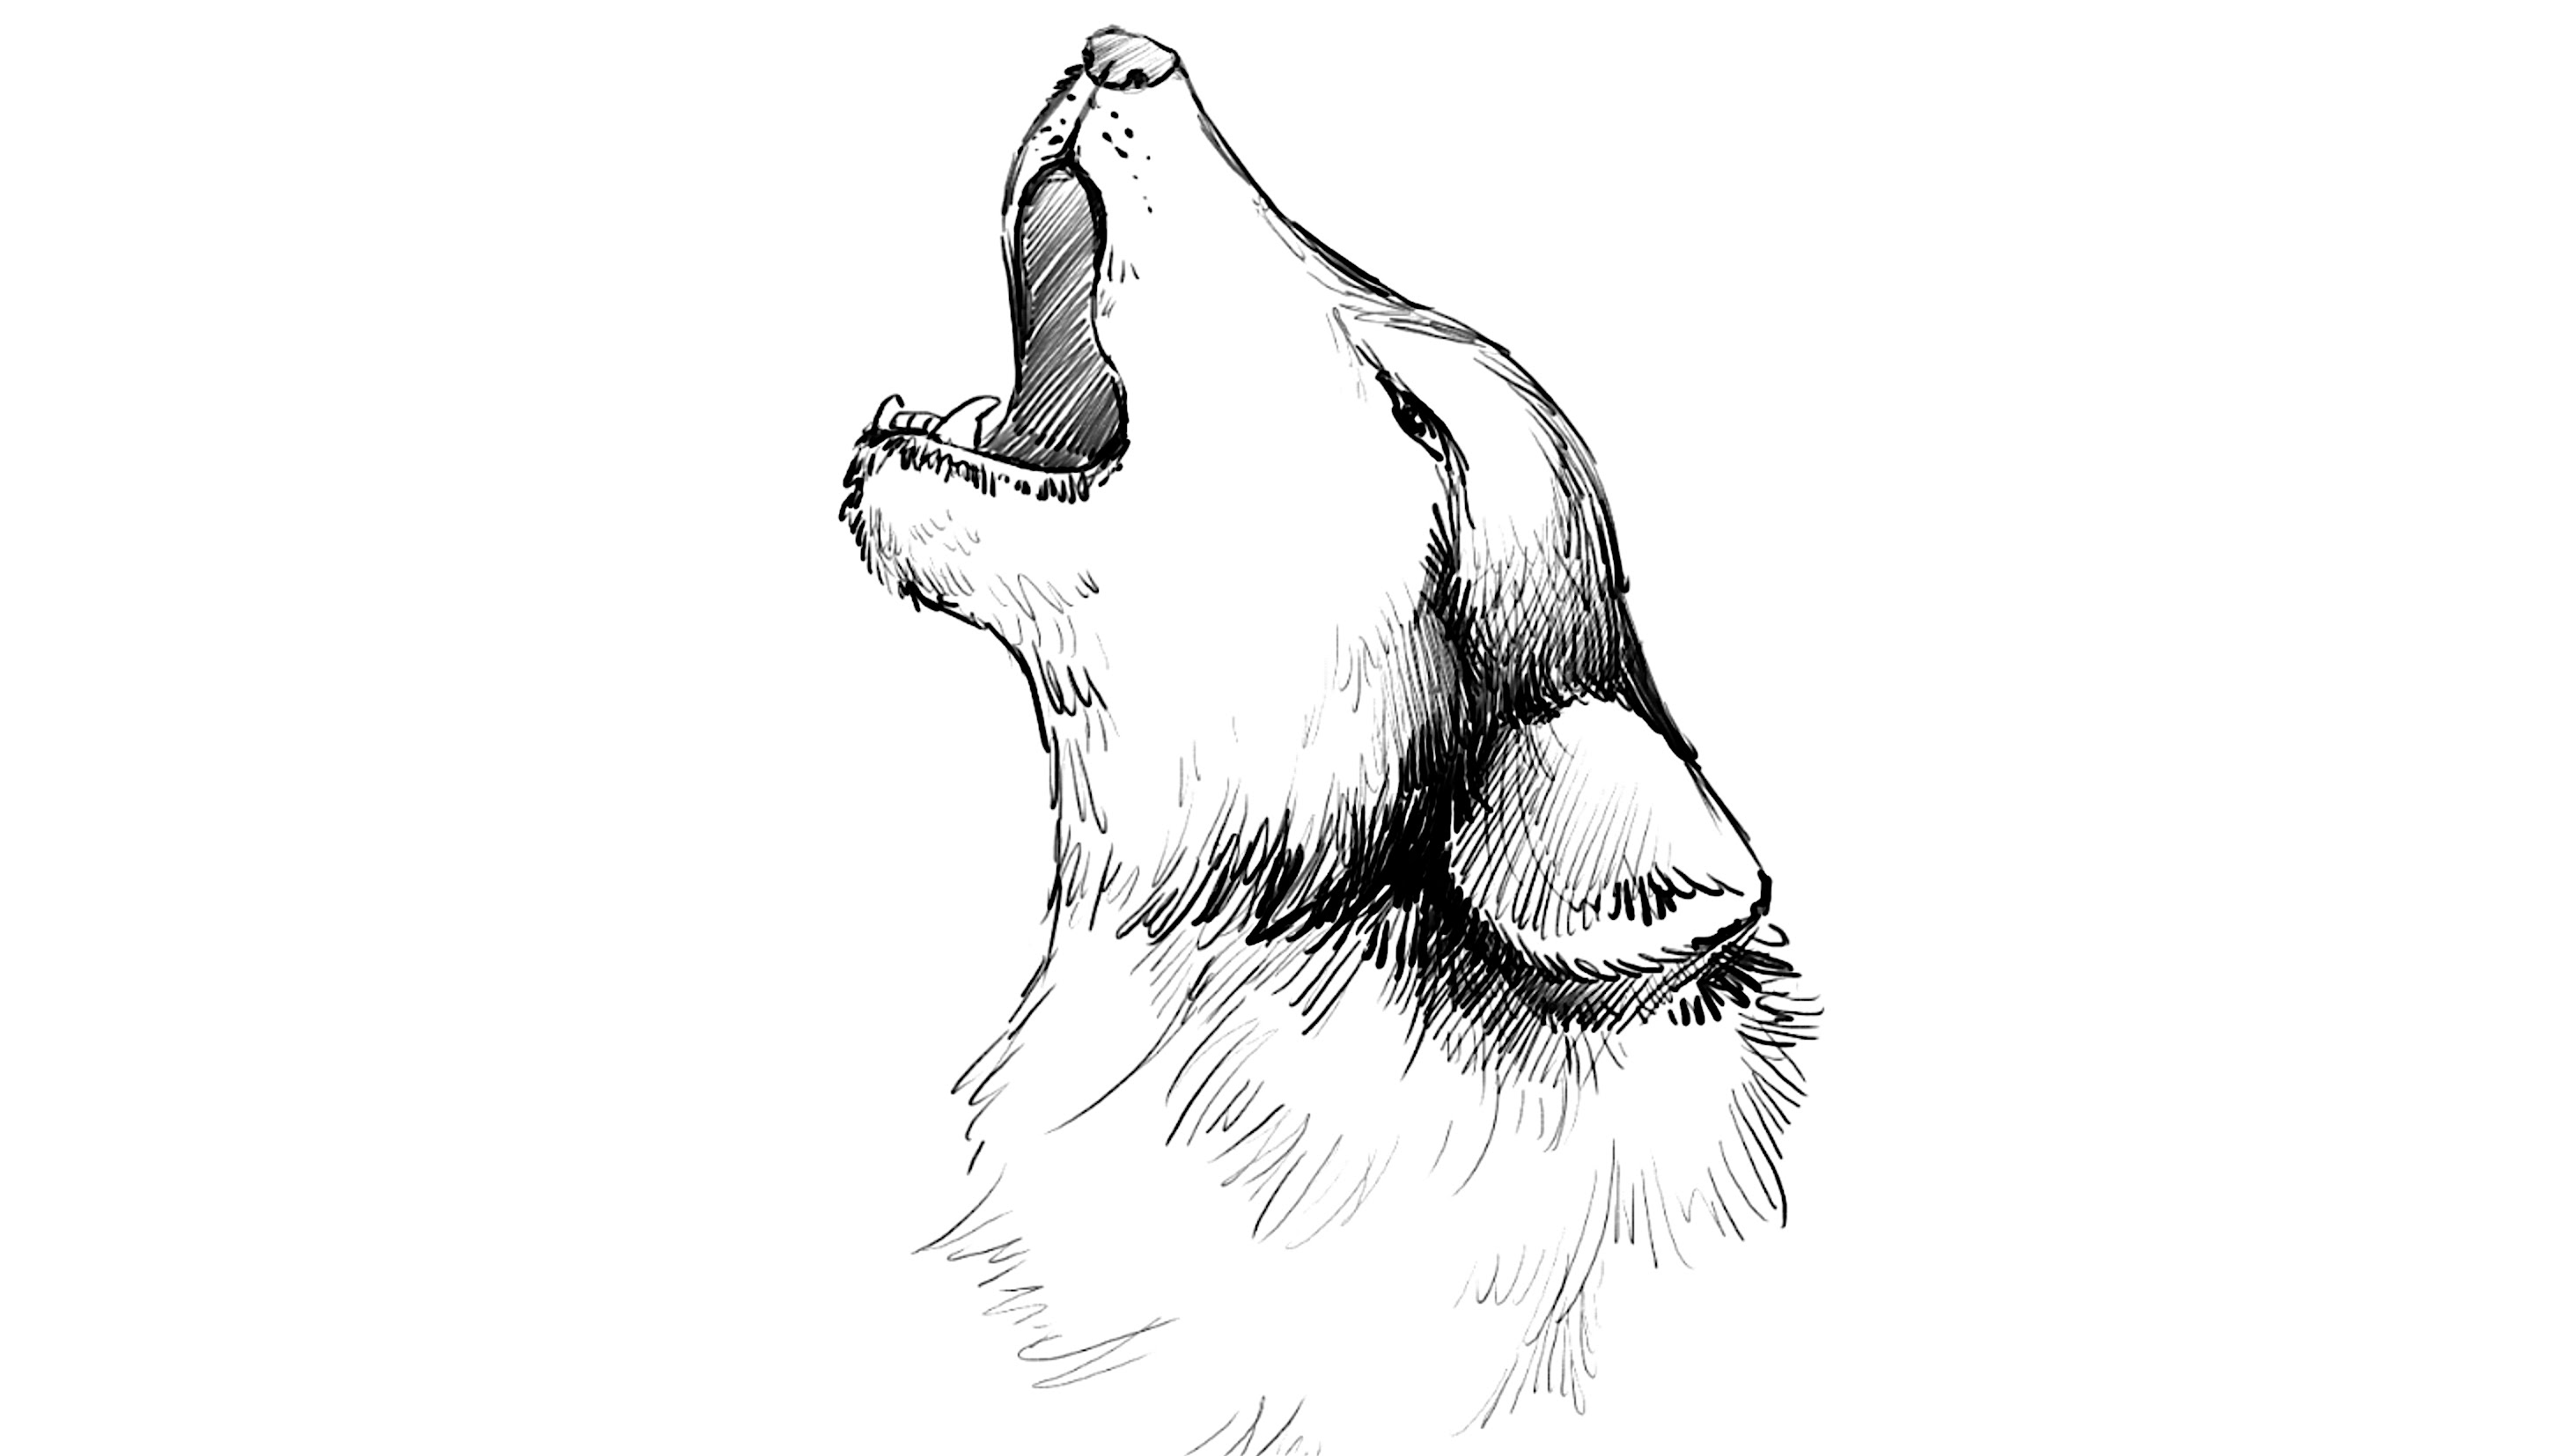 Drawn howling wolf To How a Howling to